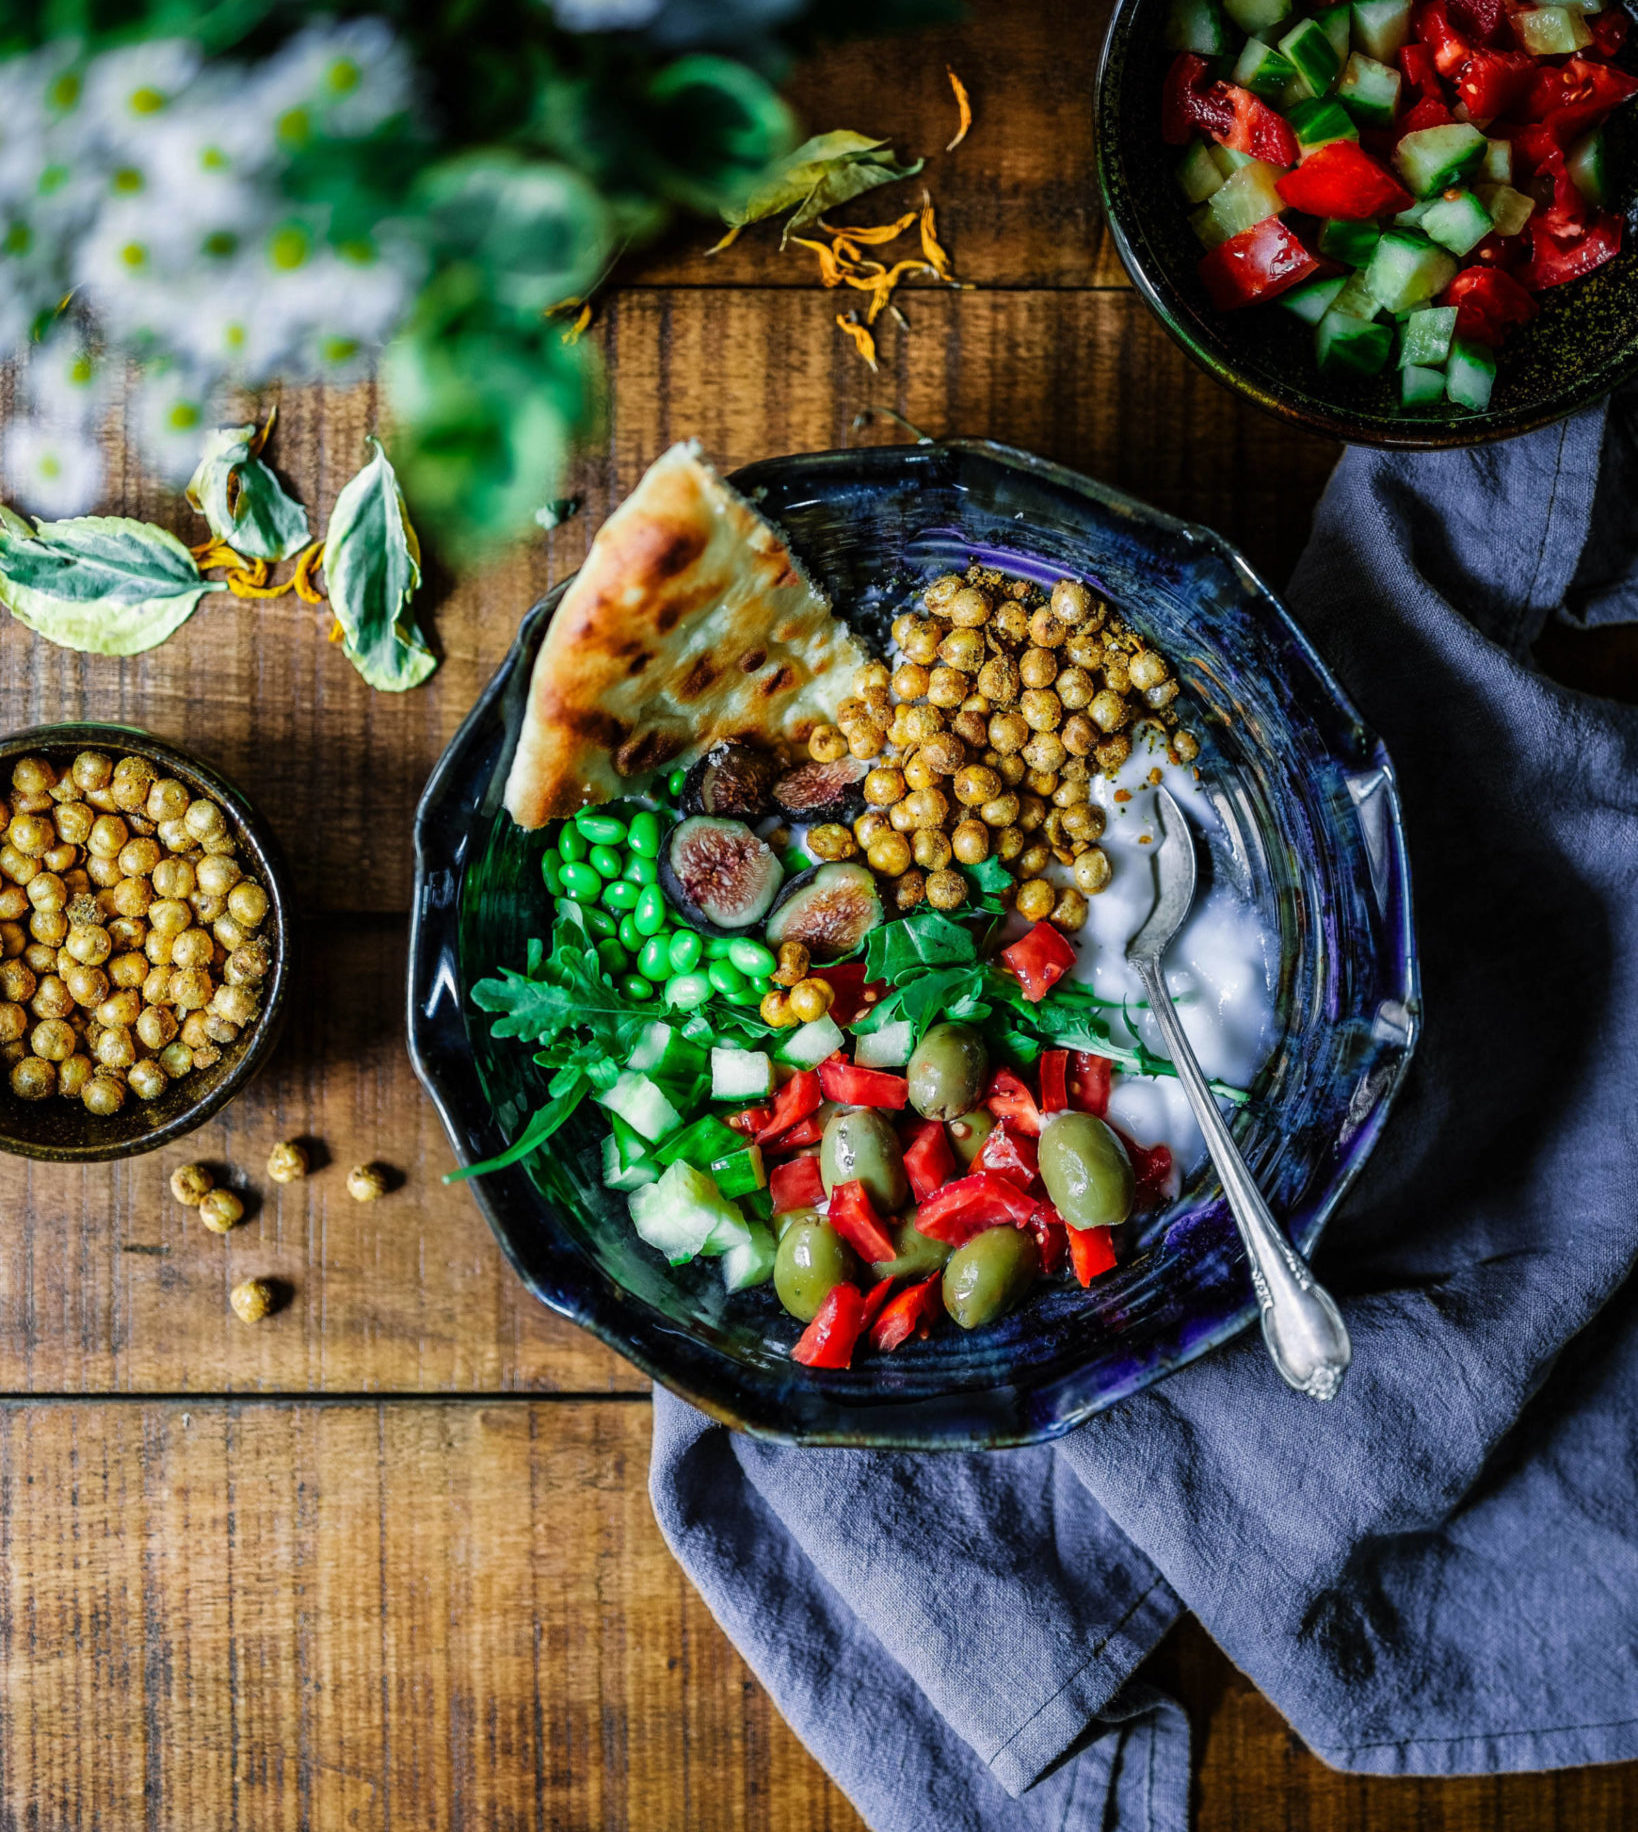 Win Friends With Salad- A Guide to Healthy Eating